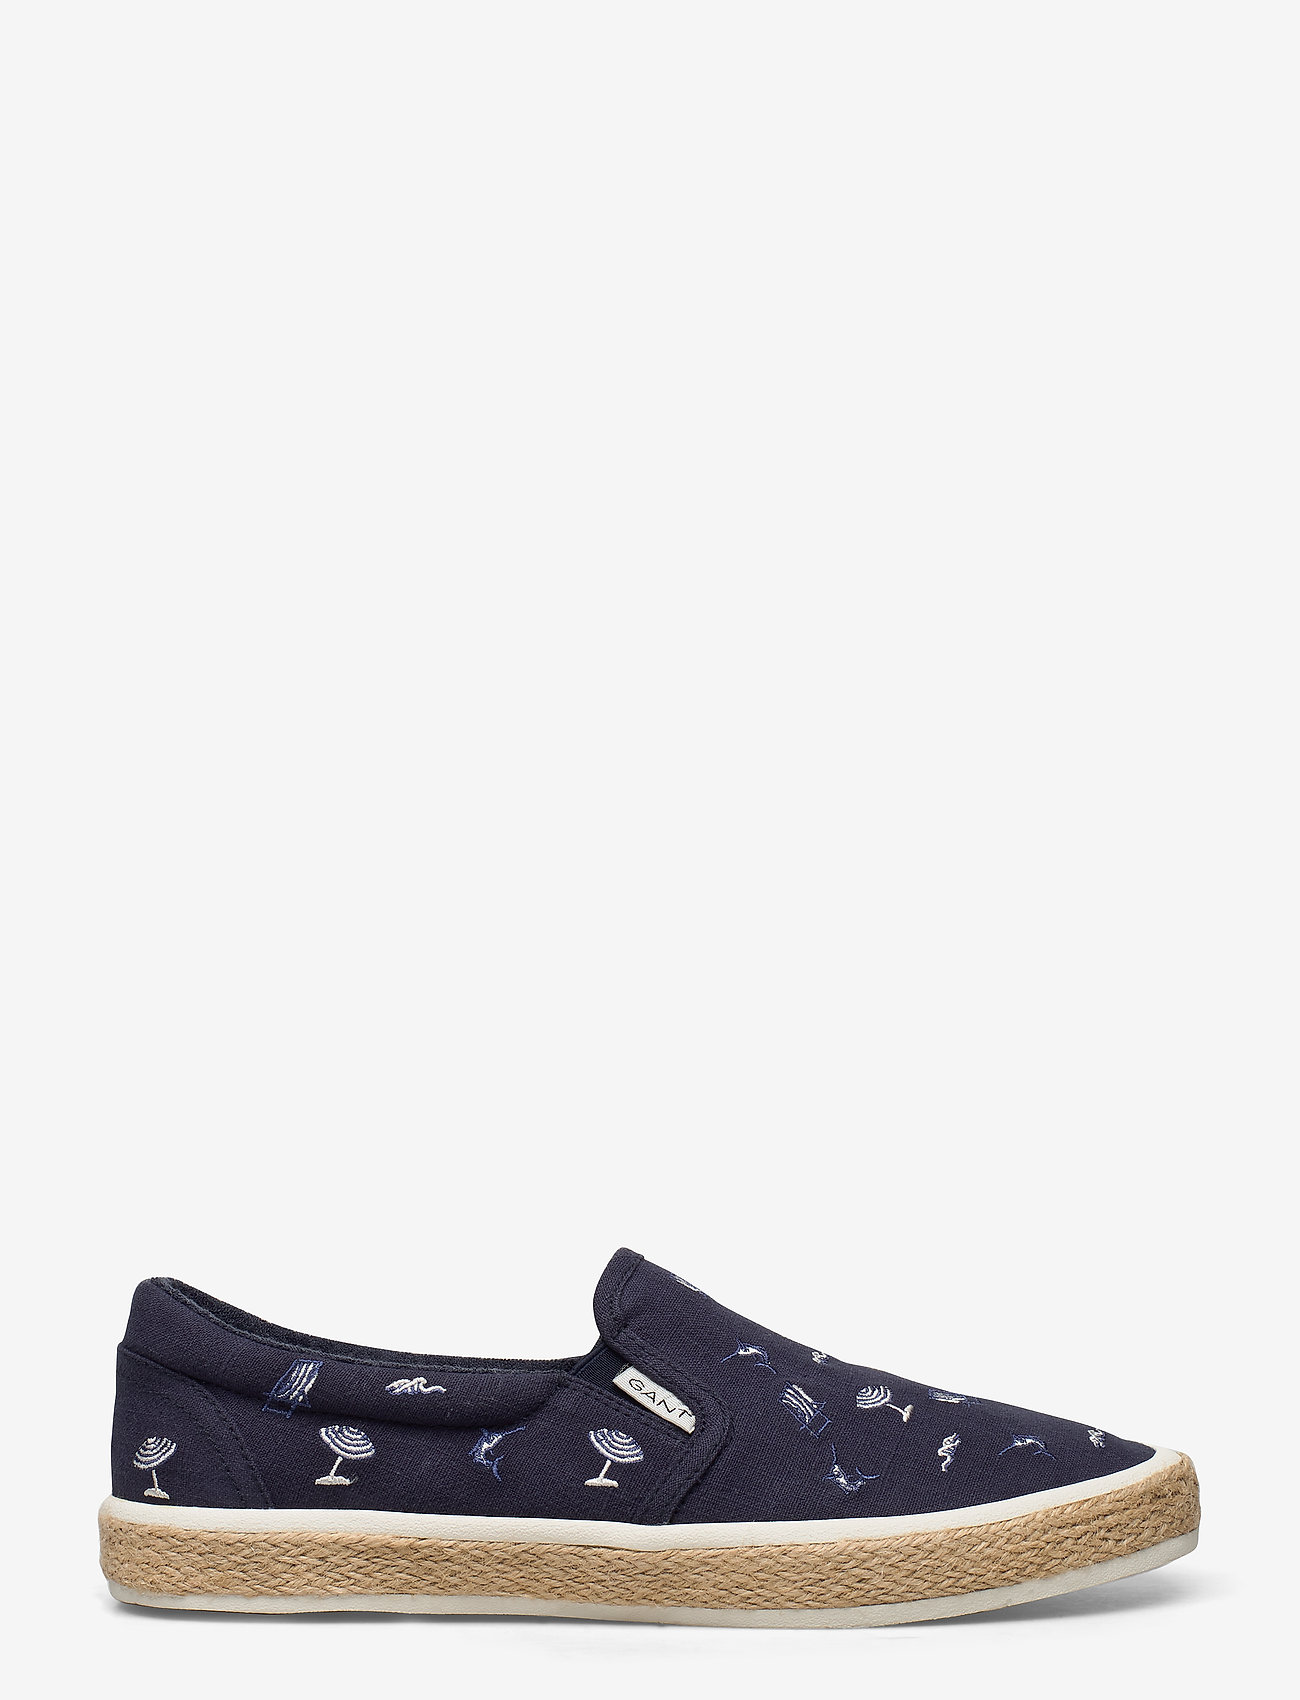 GANT - Primelake Slip-on shoes - espadrilles - marine fantasy - 1